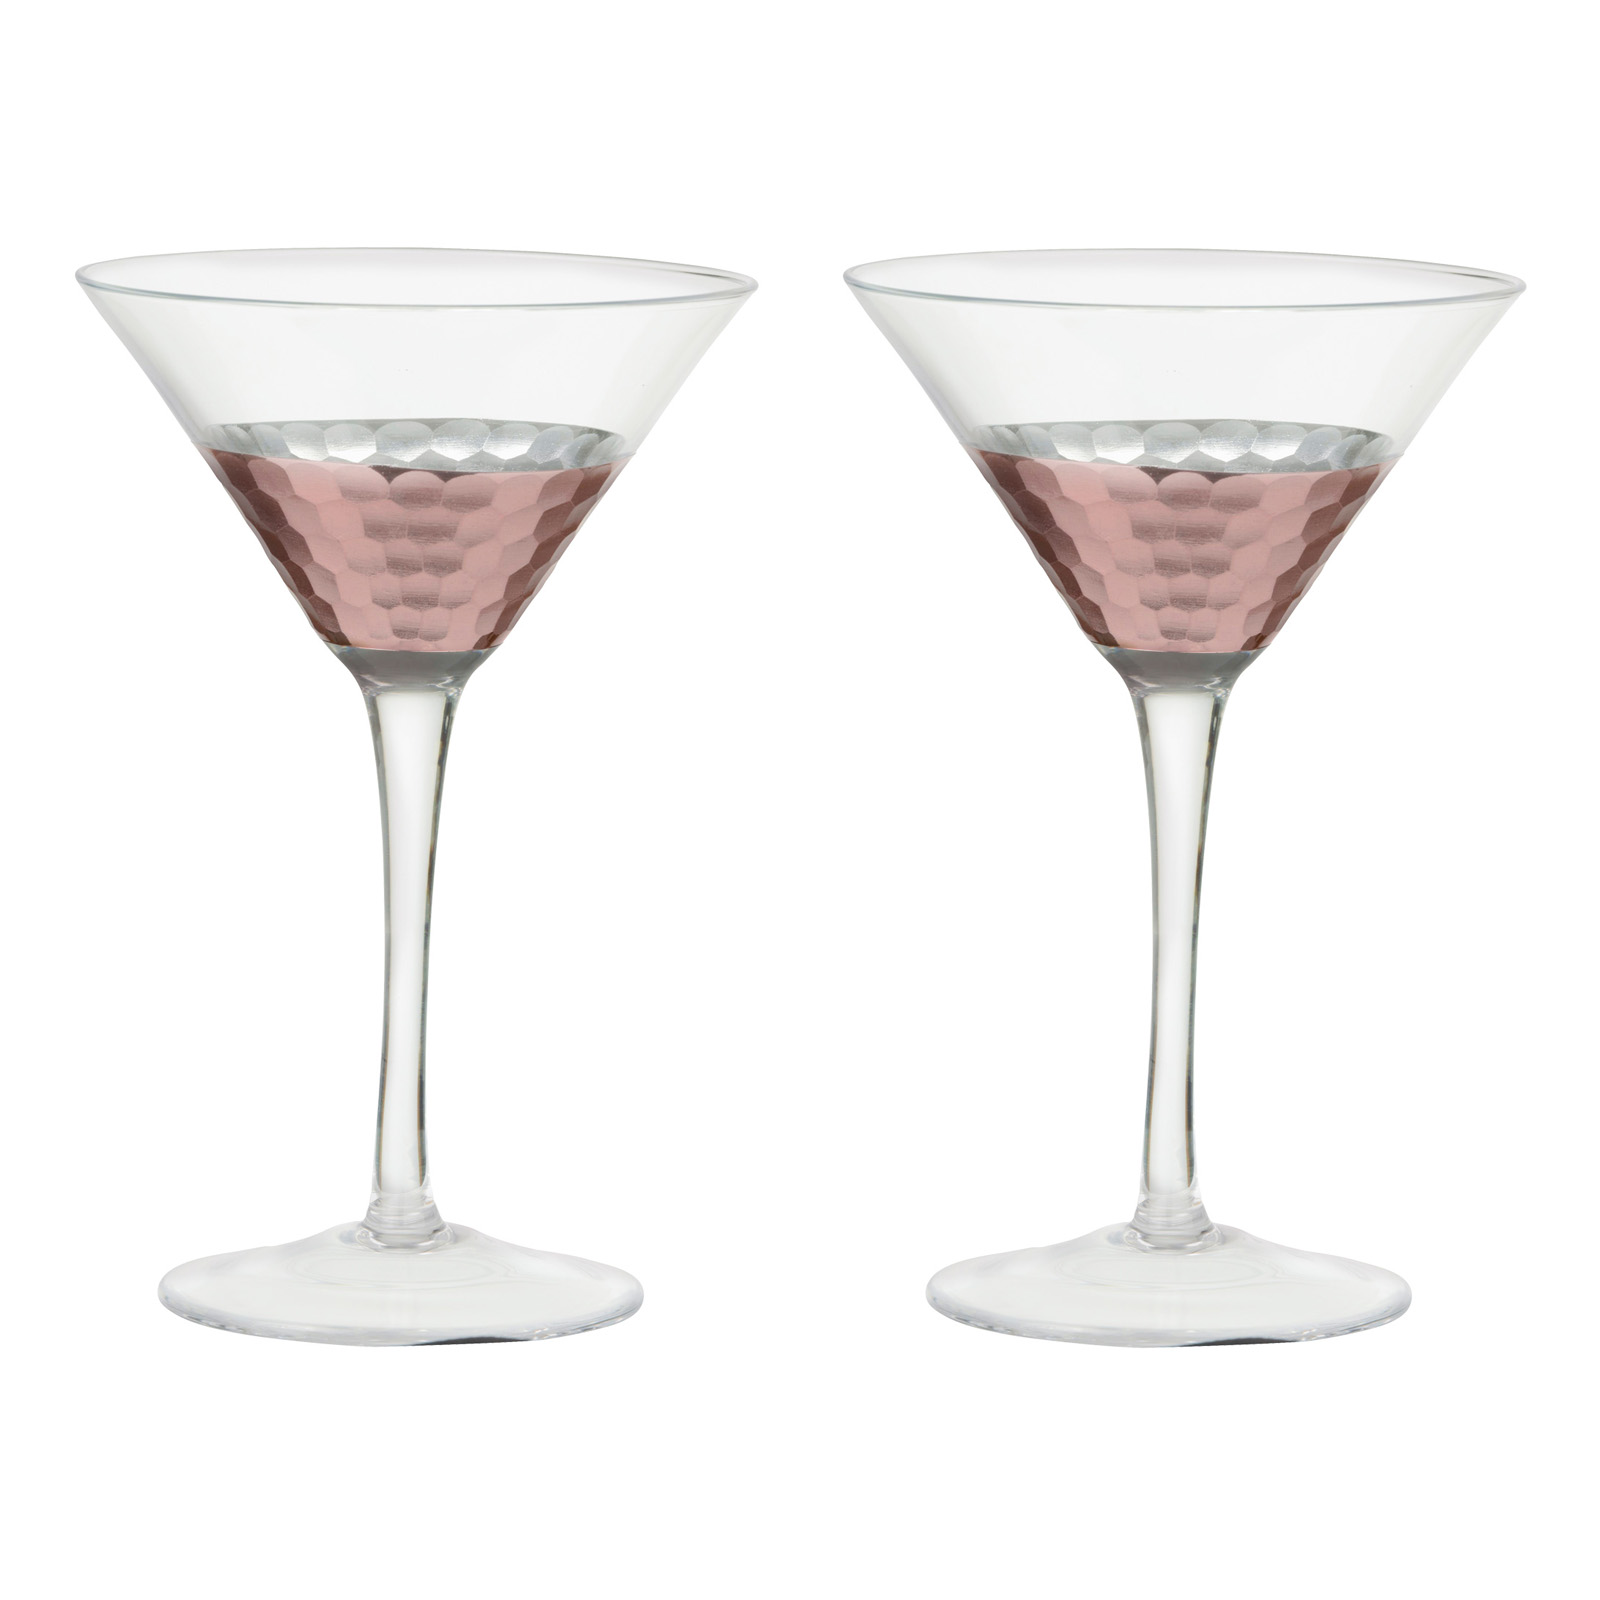 Set of 2 Coppertino Martinis by Artland